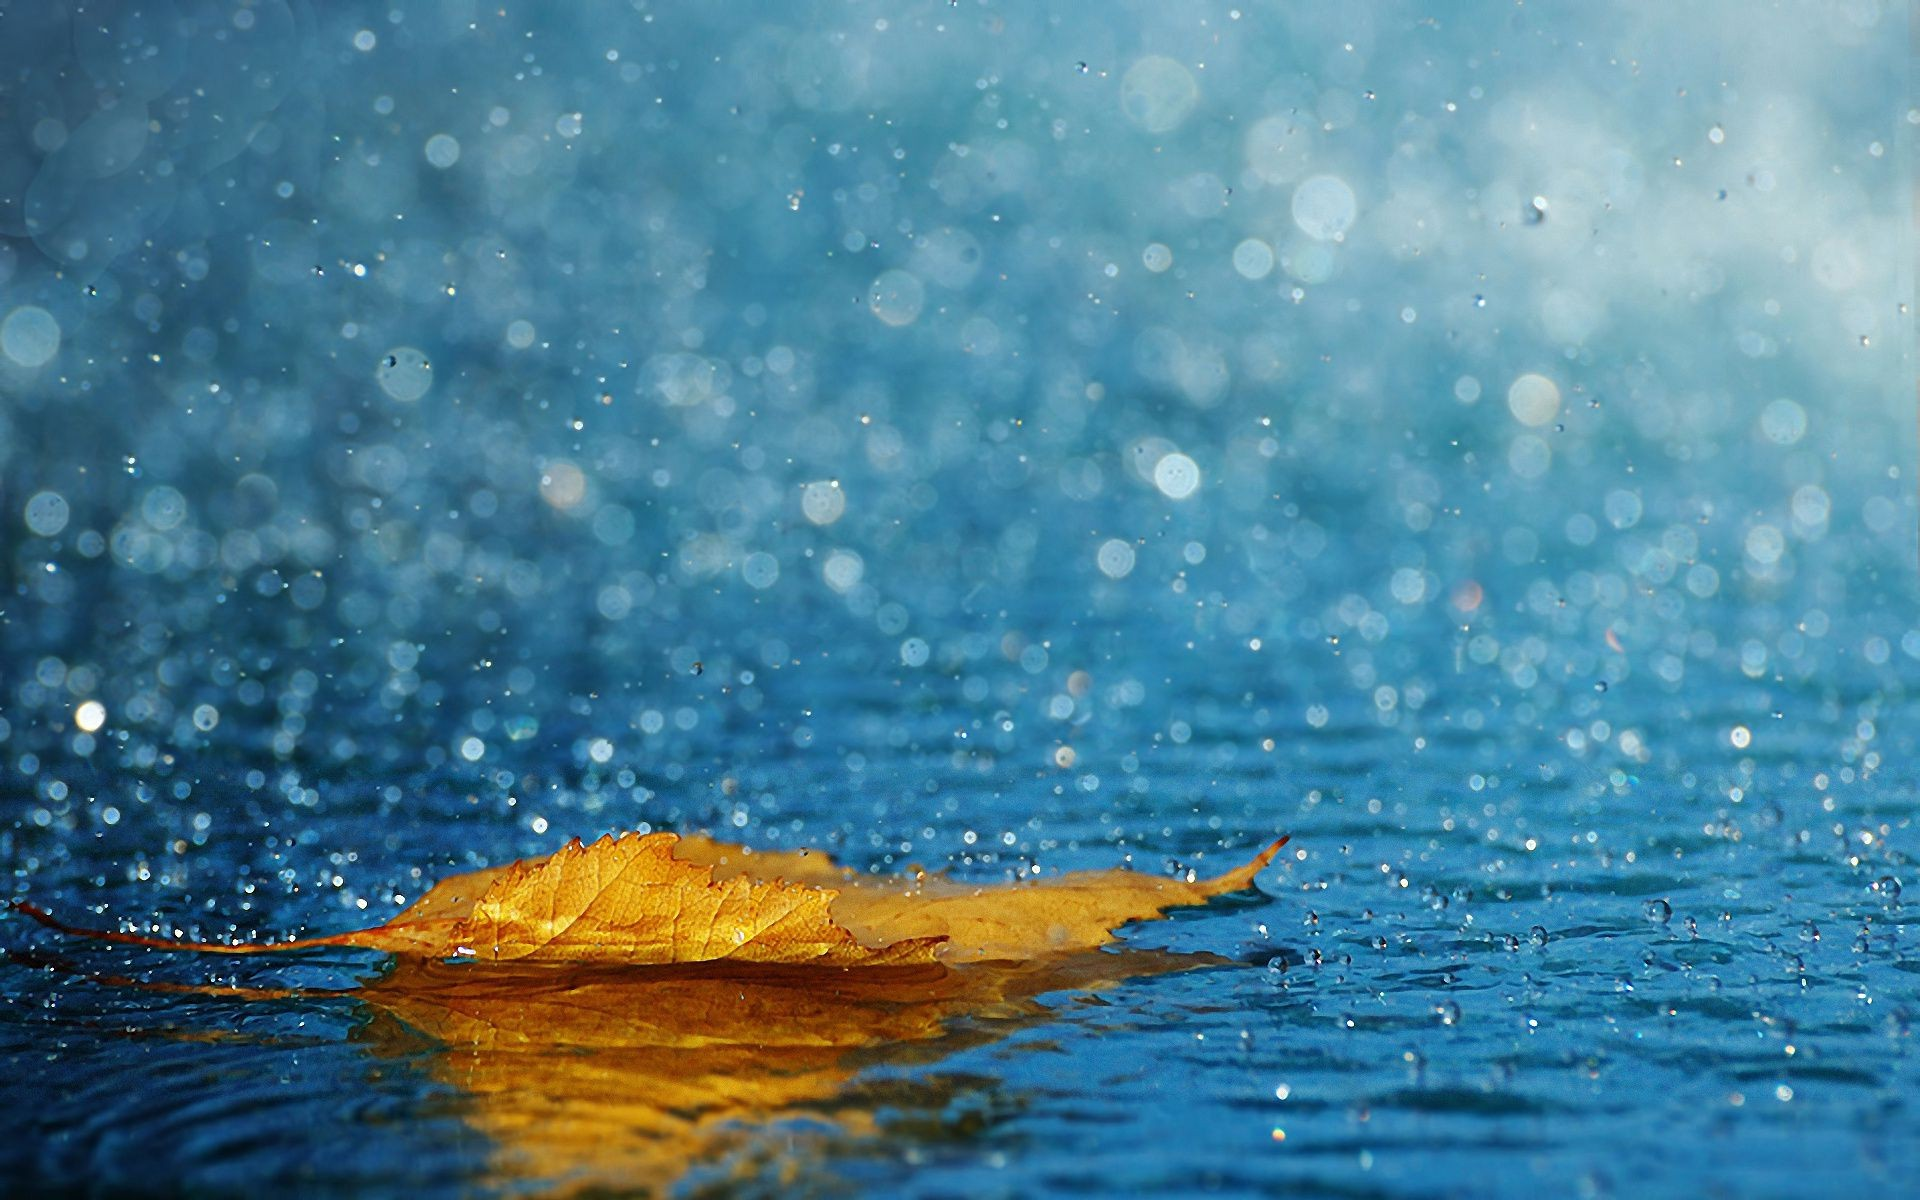 droplets and water wet water splash reflection purity wave turquoise bubble rain nature drop sea underwater ripple liquid clear clean